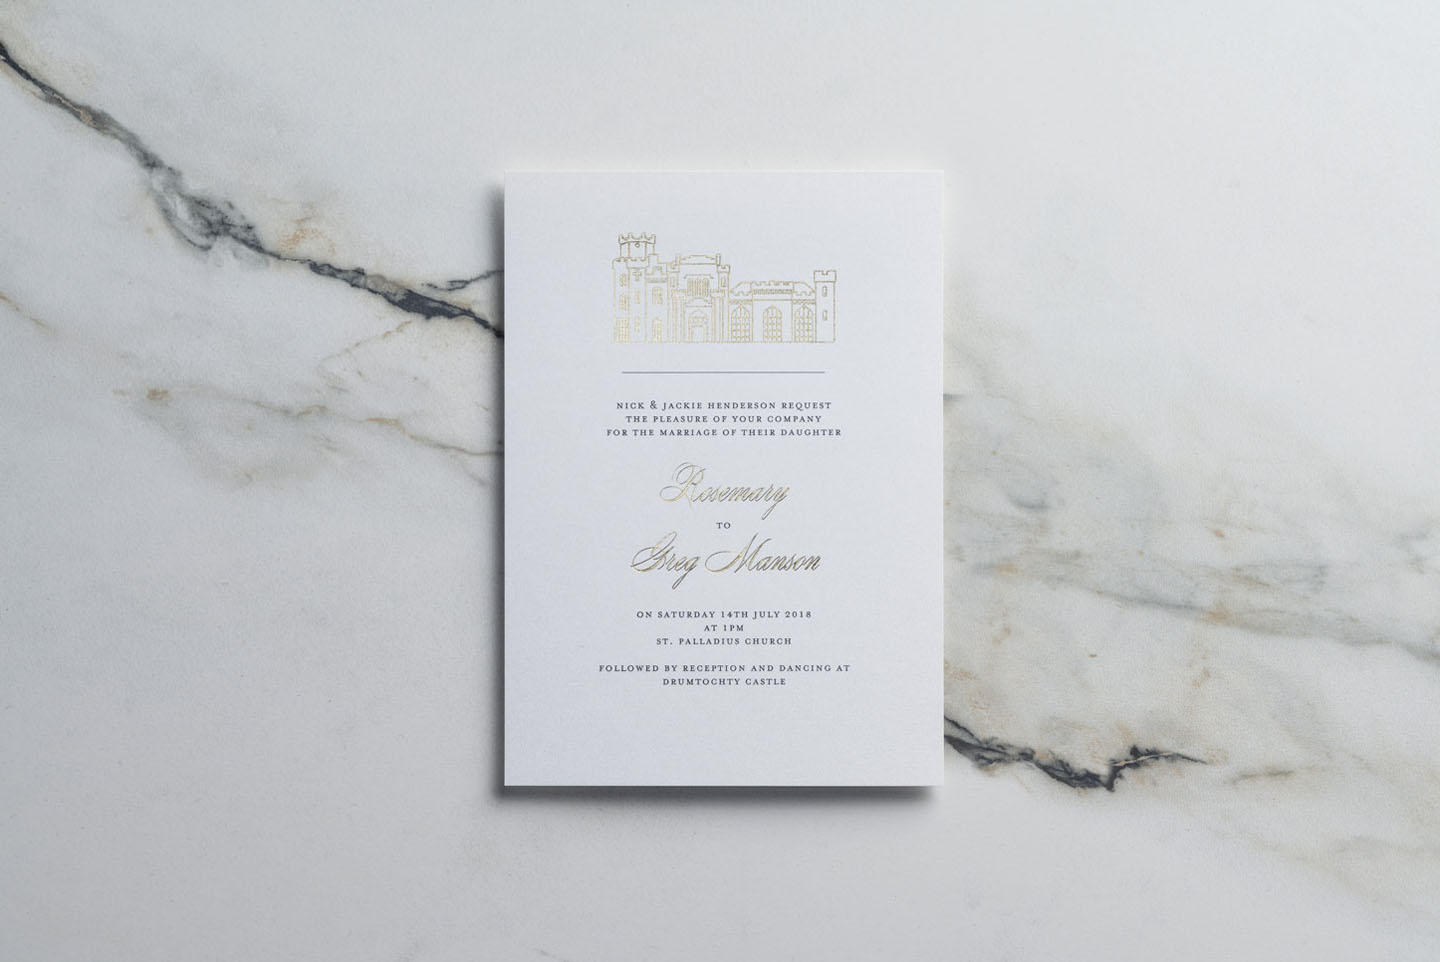 Ways to Choose Your Wedding Colour Scheme Blog | Drumtochty Castle | Gold Foil Wedding Invitations by The Foil Invite Company